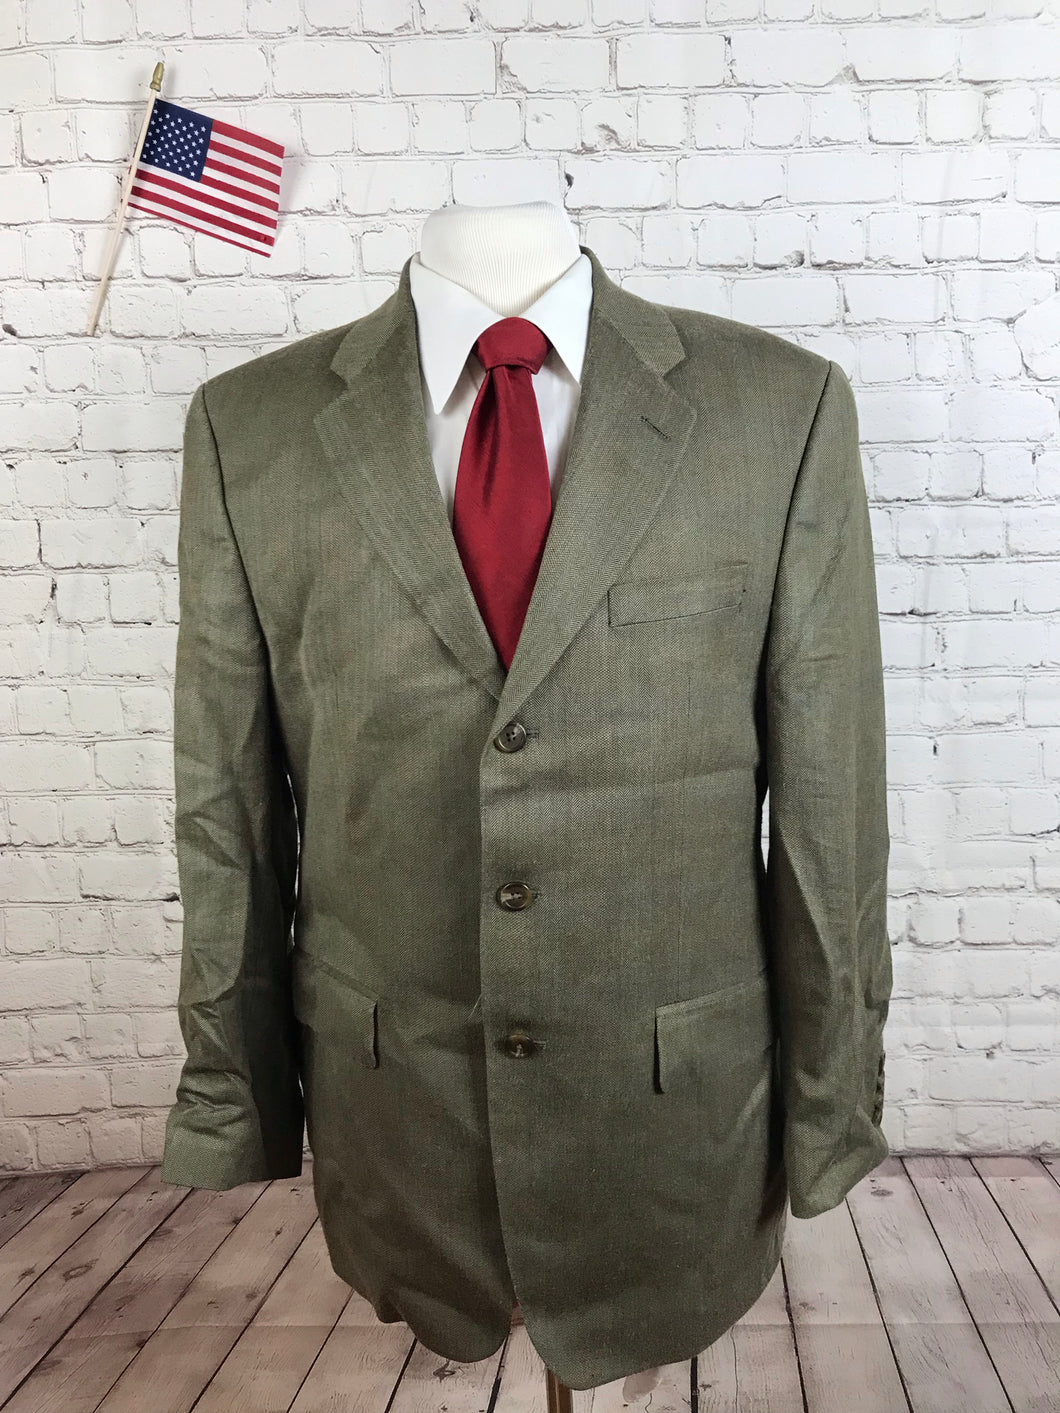 Chaps Ralph Lauren Men's Beige Check Silk Blend Blazer Sport Coat Suit Jacket 40R $395